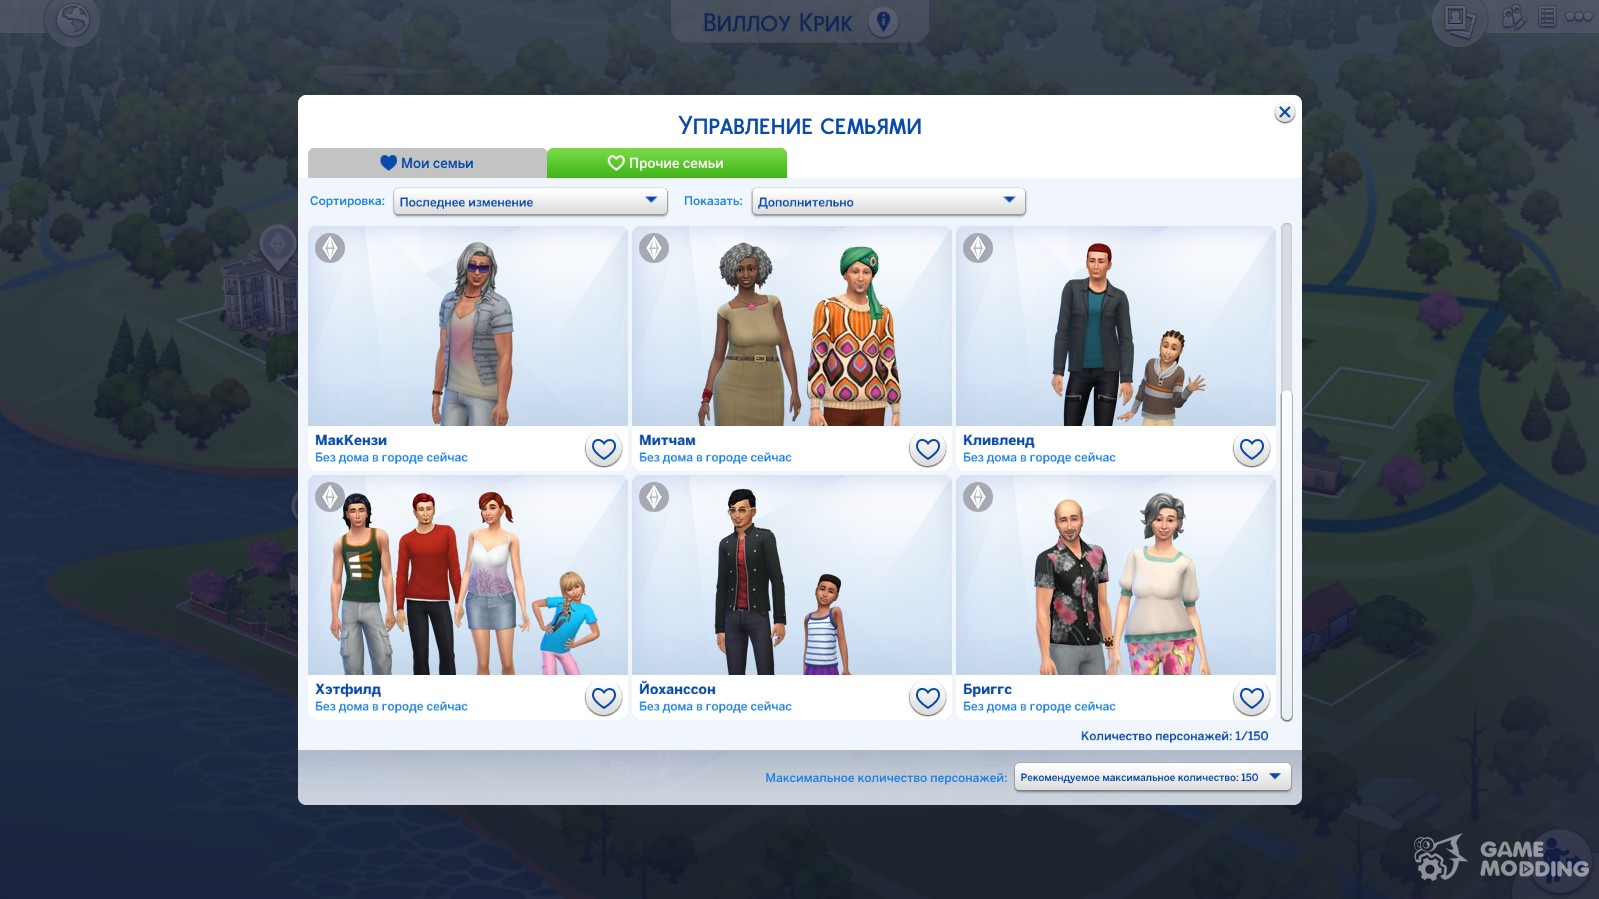 The sims 4 || мод